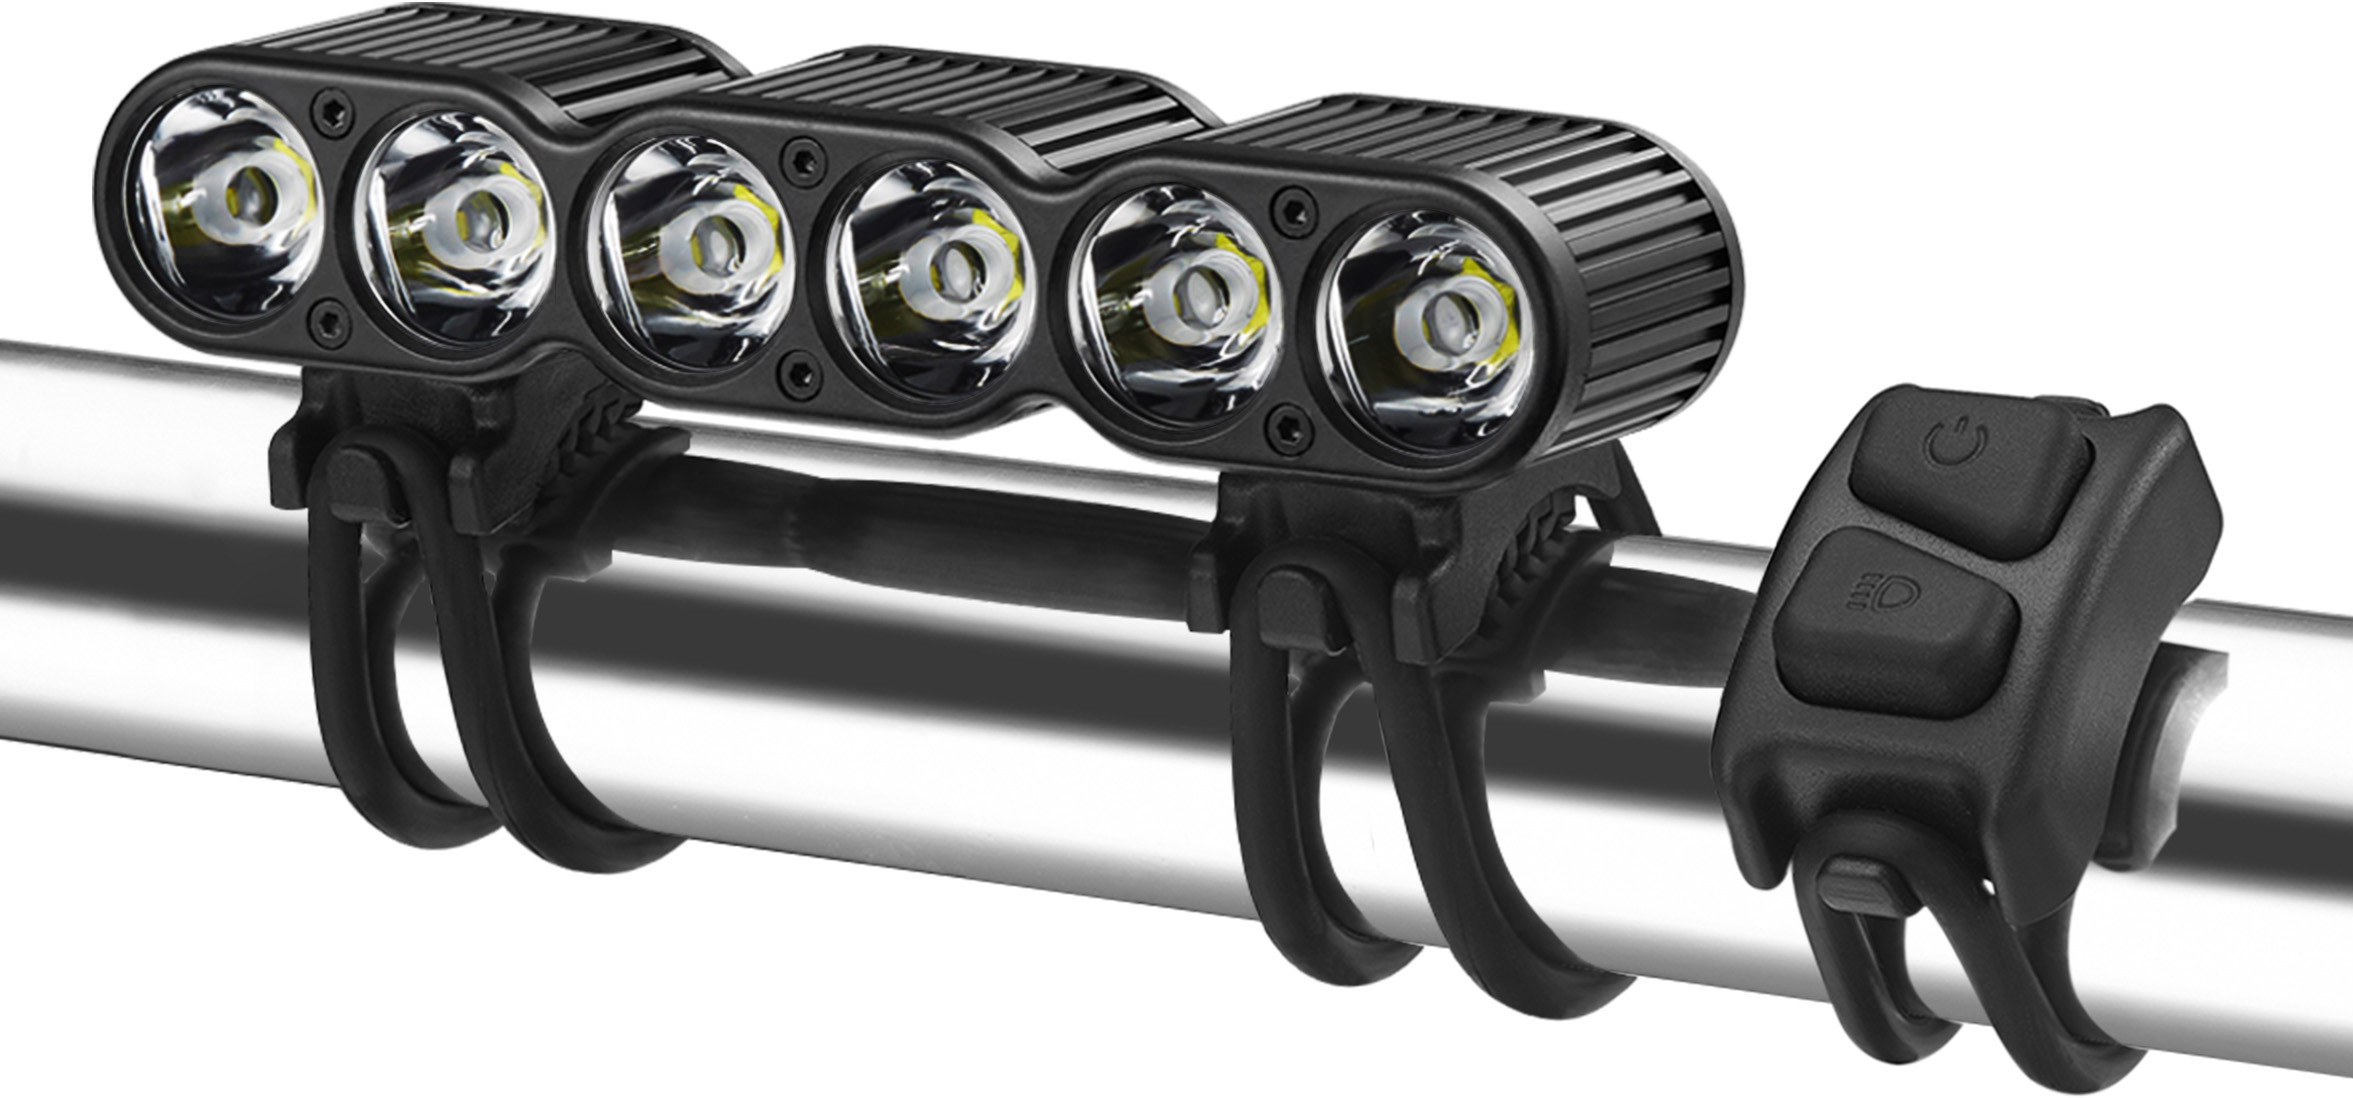 Gemini TITAN 2500 OLED 2-Cell Front Light | Front lights